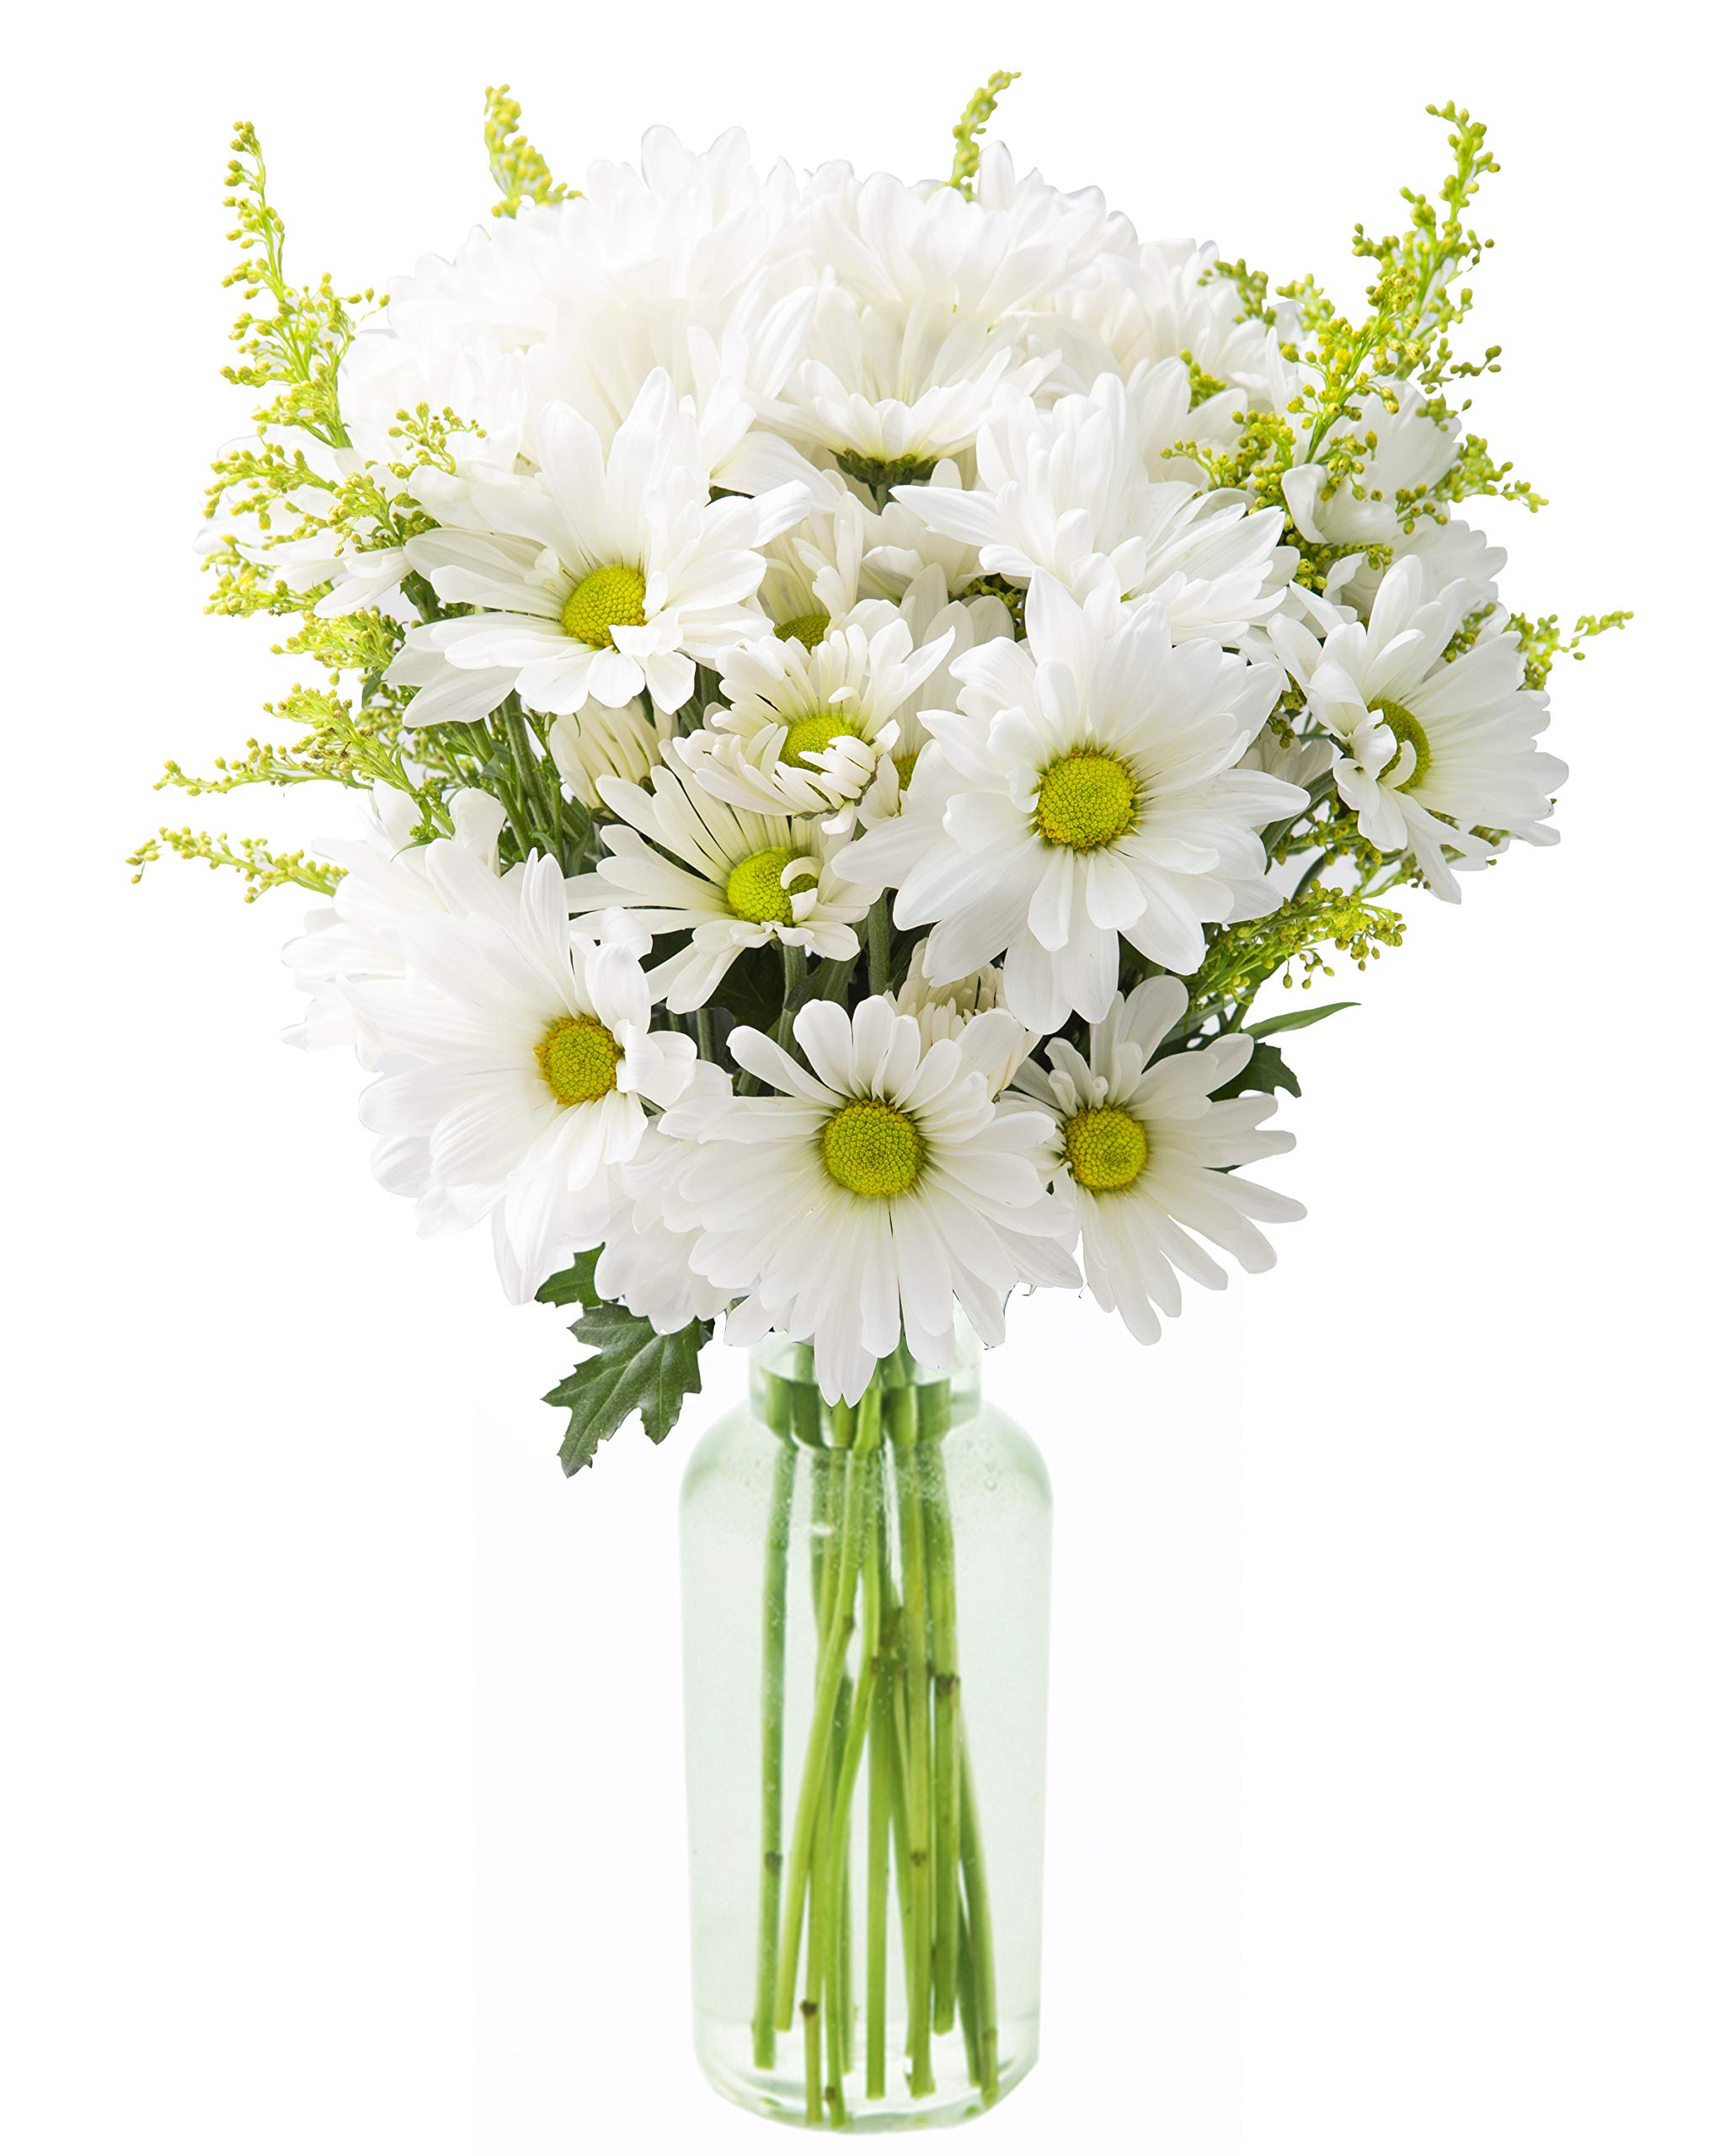 KaBloom Bountiful Beauty Bouquet of Fresh White Daisies with Vase by KaBloom